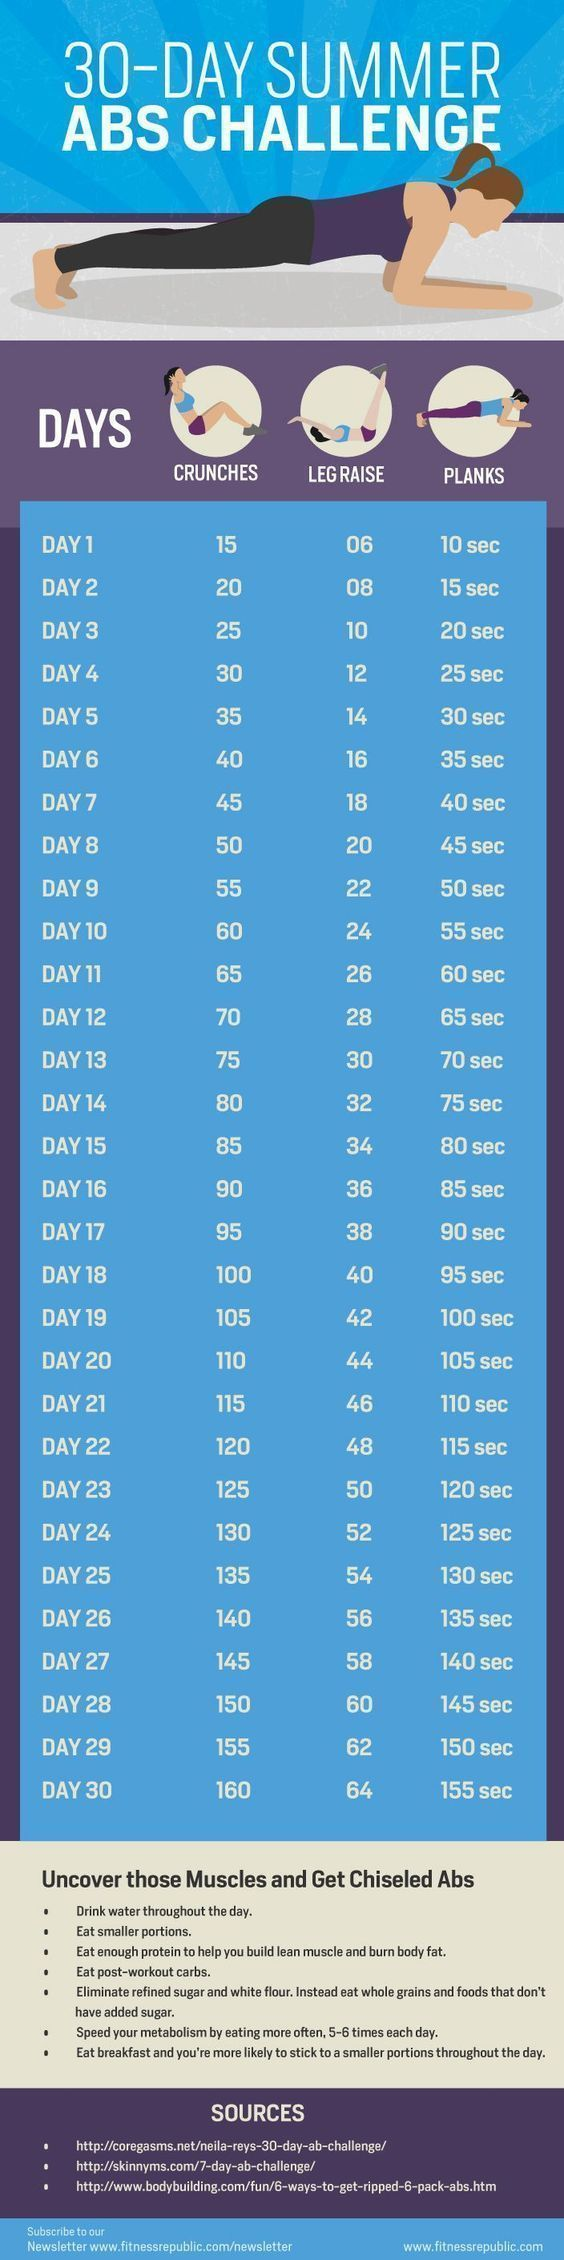 1200 Calorie Diet Menu - 7 Day Lose 20 Pounds Weight Loss Meal Plan Visit us here greenproduct.wixs...